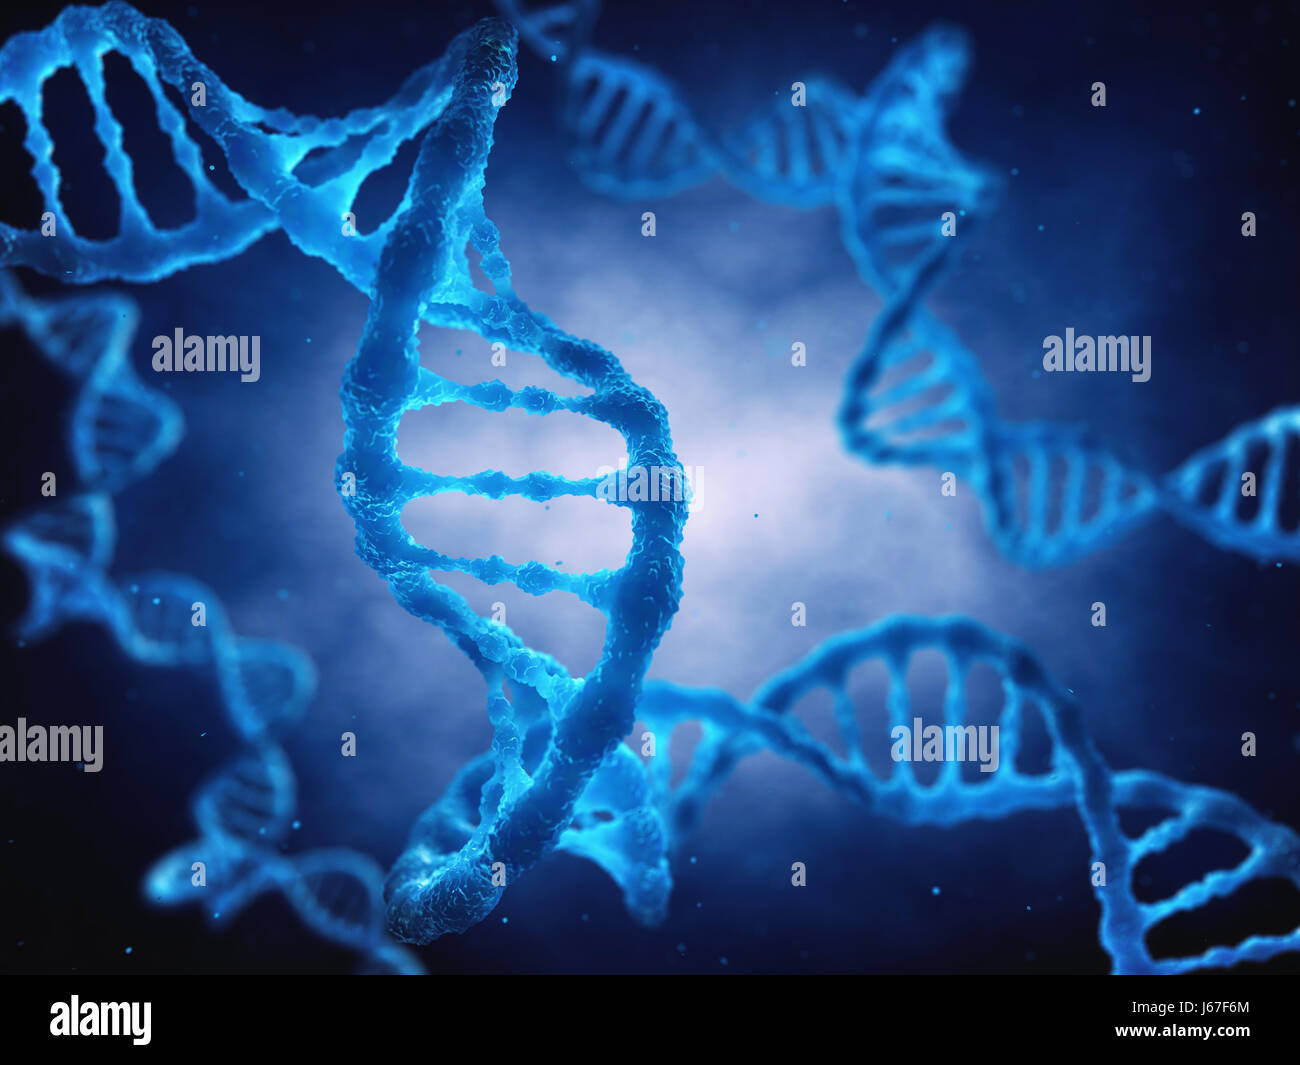 The dna double helix molecule is the genetic blueprint for life the dna double helix molecule is the genetic blueprint for life molecular genetics malvernweather Choice Image